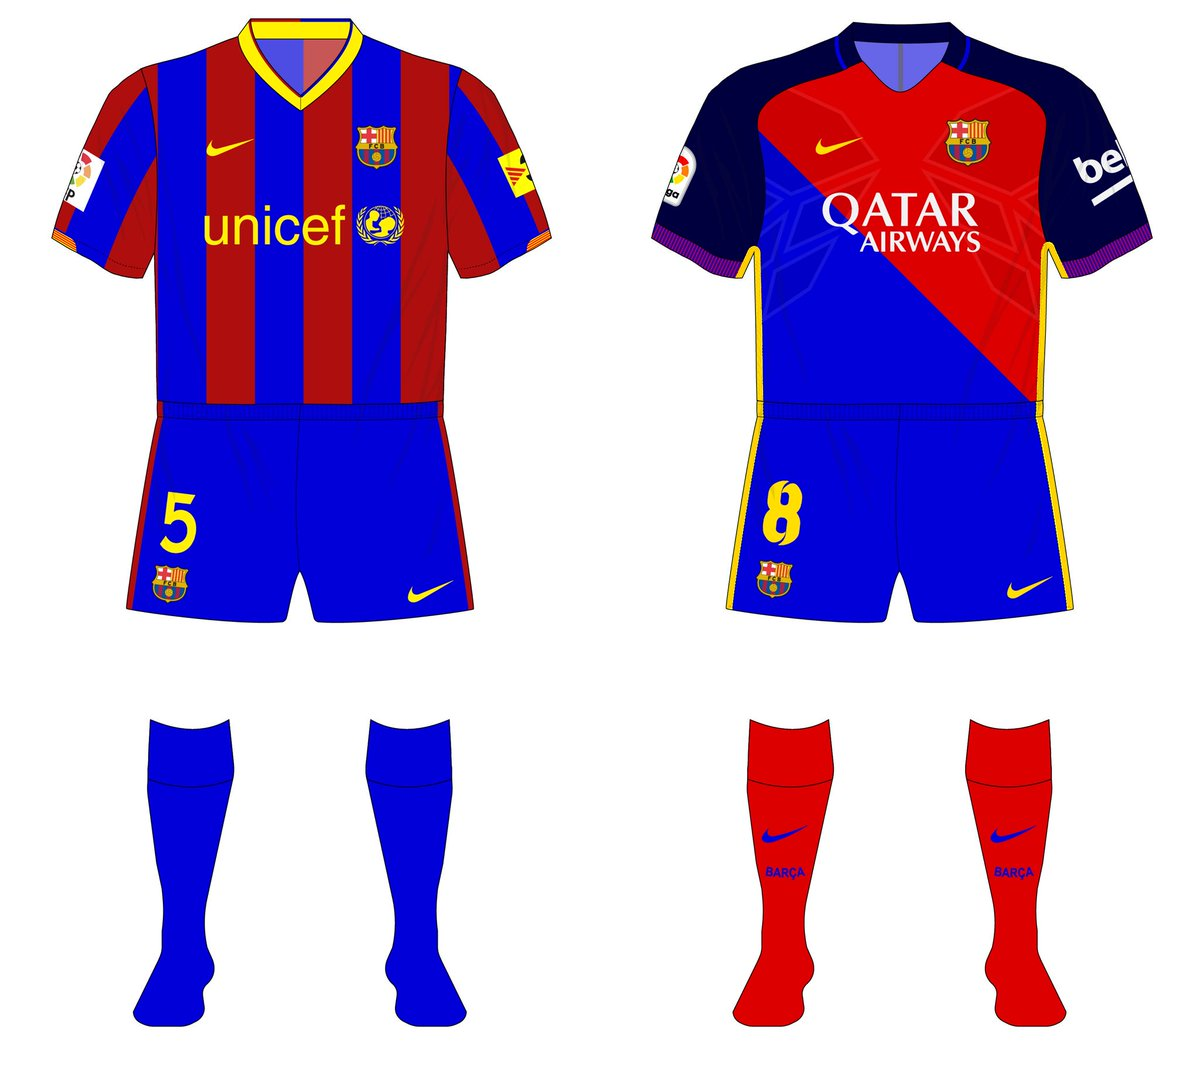 Museum Of Jerseys On Twitter Late Bump For Gellatley S Alternate History Barcelona Fantasykitfriday Requests Https T Co Bc5iyaejk7